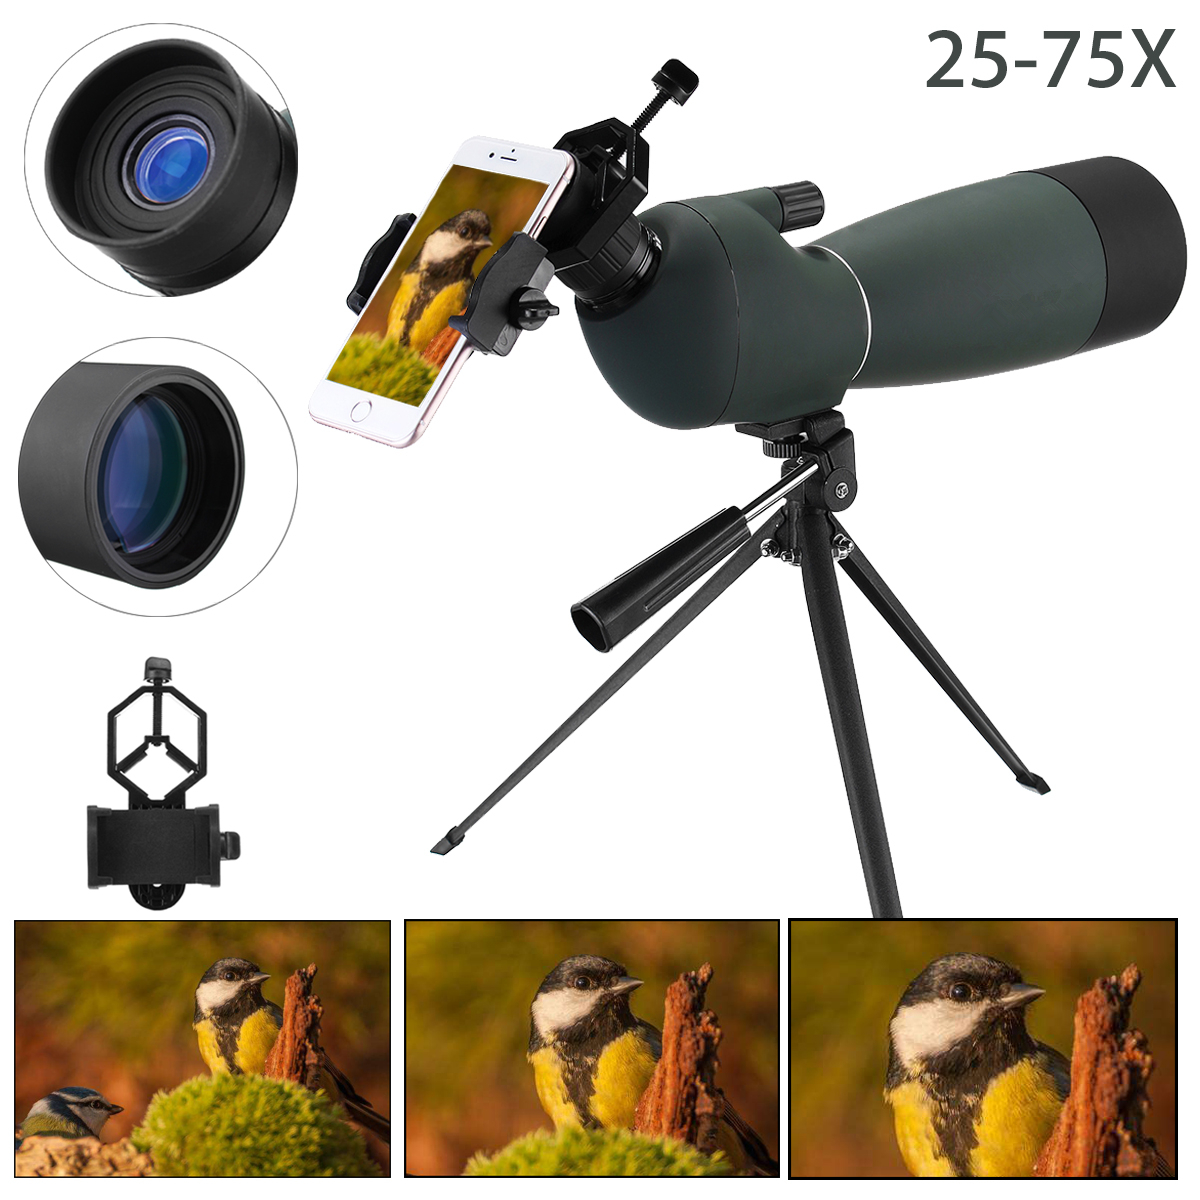 25-75X70 Zoom Telescope Monocular Waterproof Shockproof Spotting Scope Binoculars with Tripod Phone Holder for Birdwatching visionking sw 7x28 binocular for birdwatching with 100